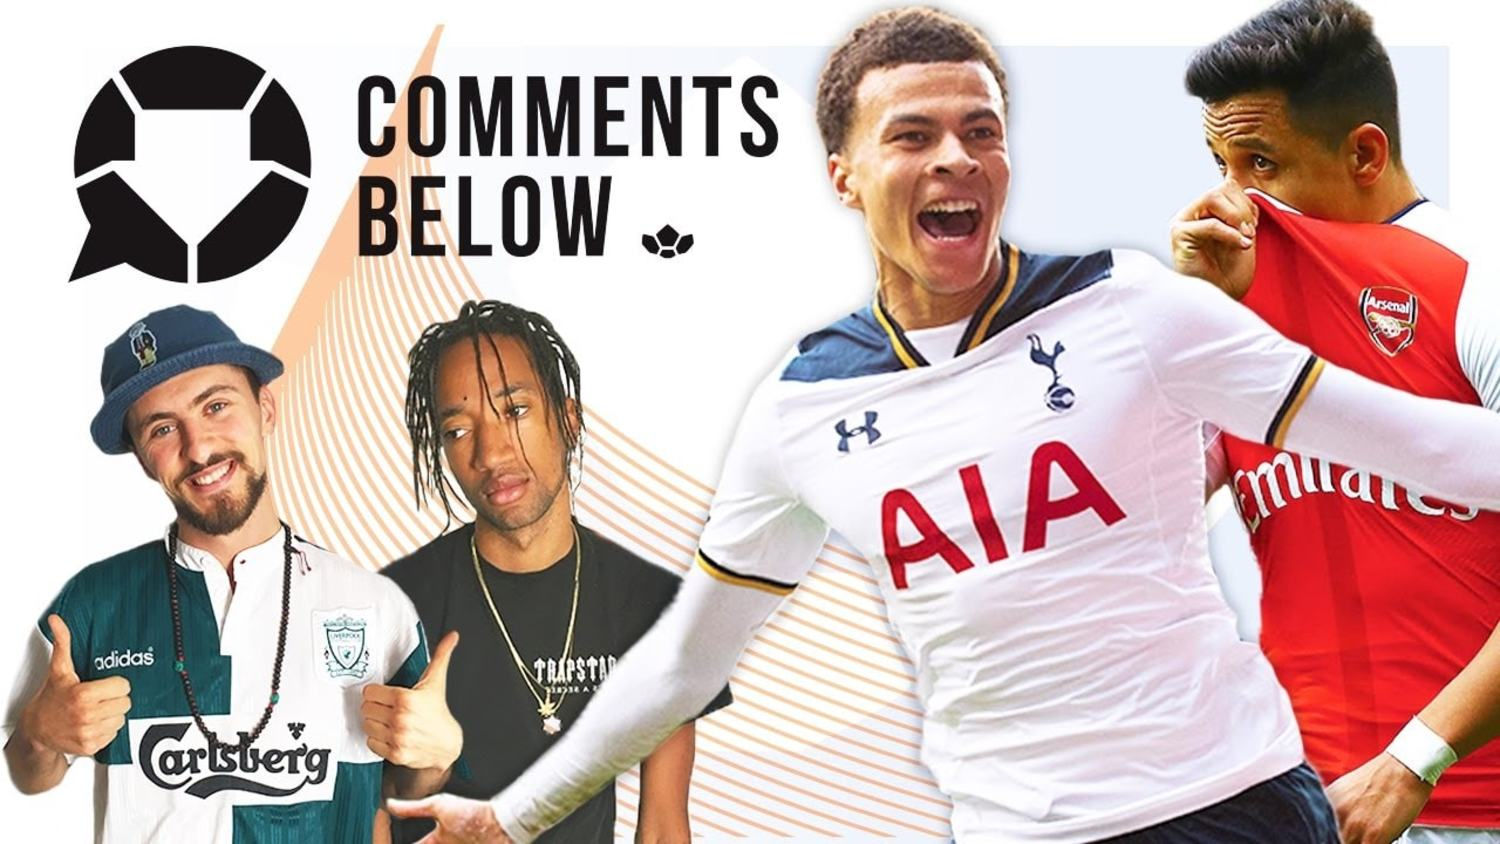 Are Spurs now a bigger club than Arsenal? | Comments Below